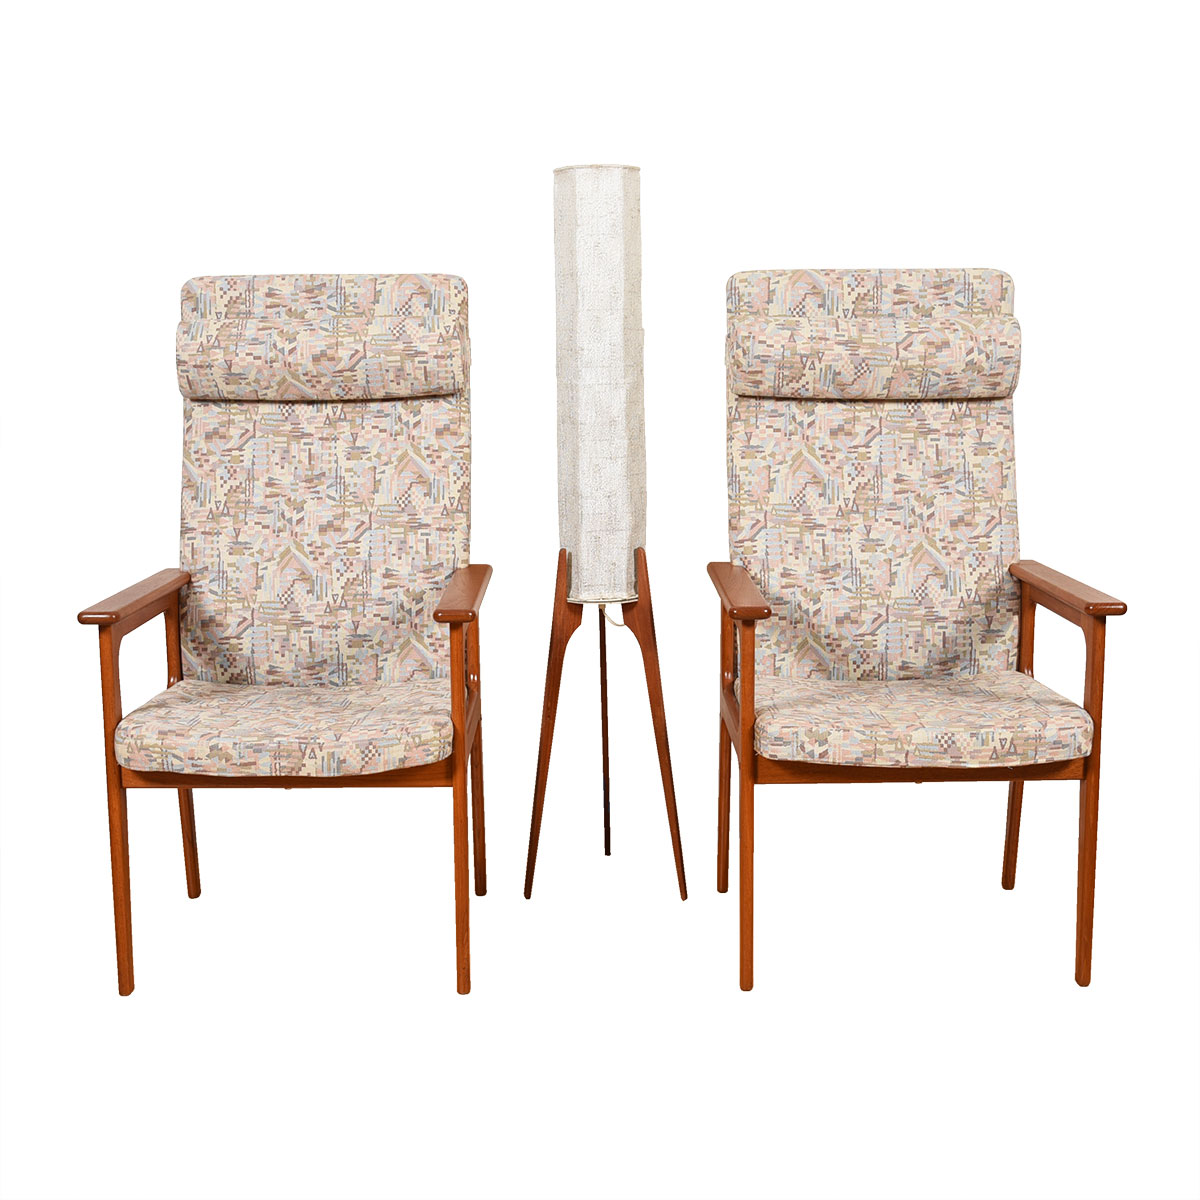 Pair of O.D. Mobler Danish Modern Tallback Easy Chairs